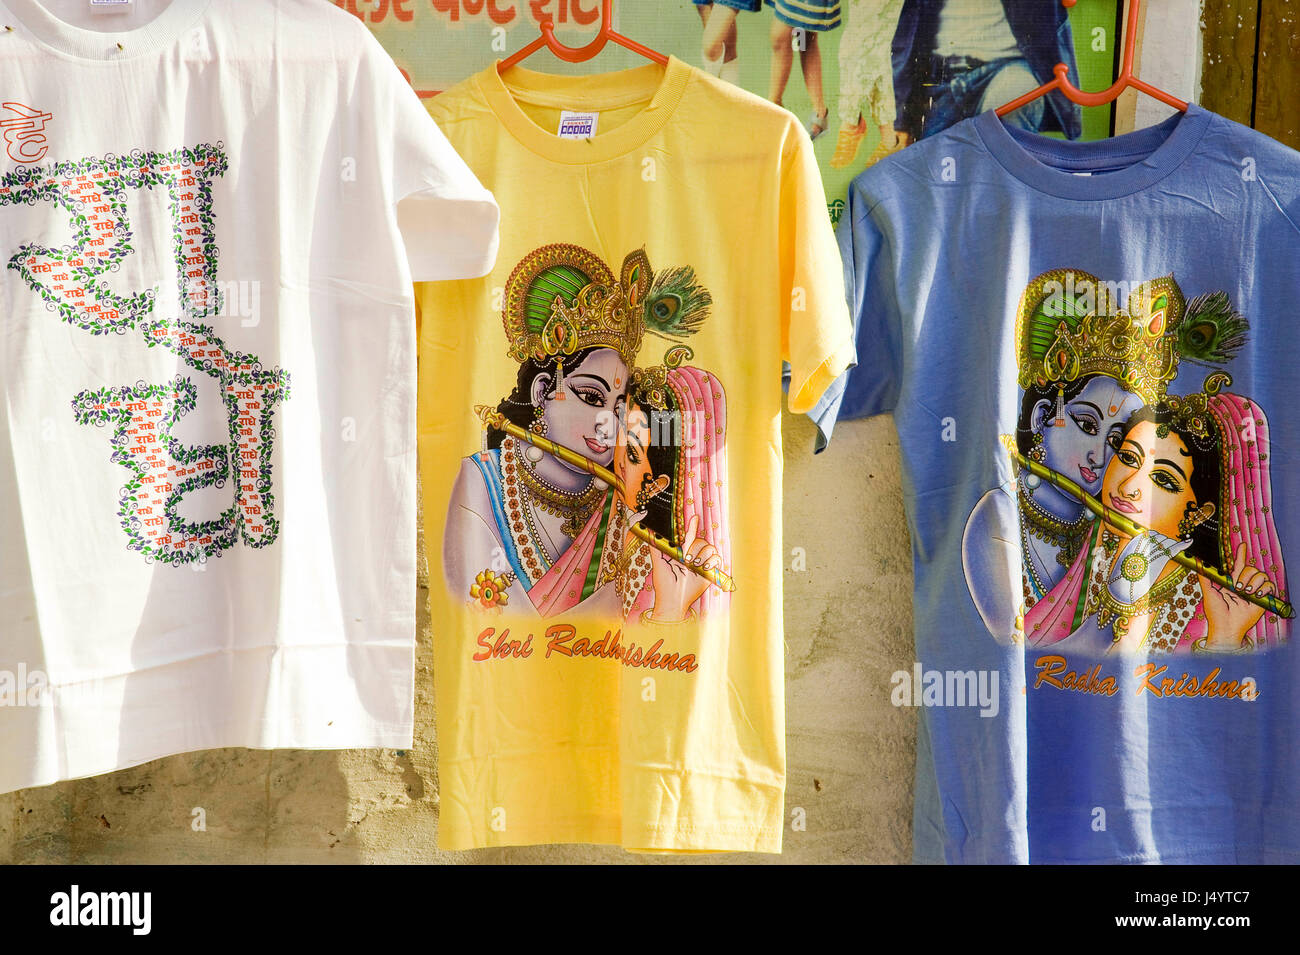 94abfc4c Radha krishna printed on t shirt, mathura, uttar pradesh, india, asia -